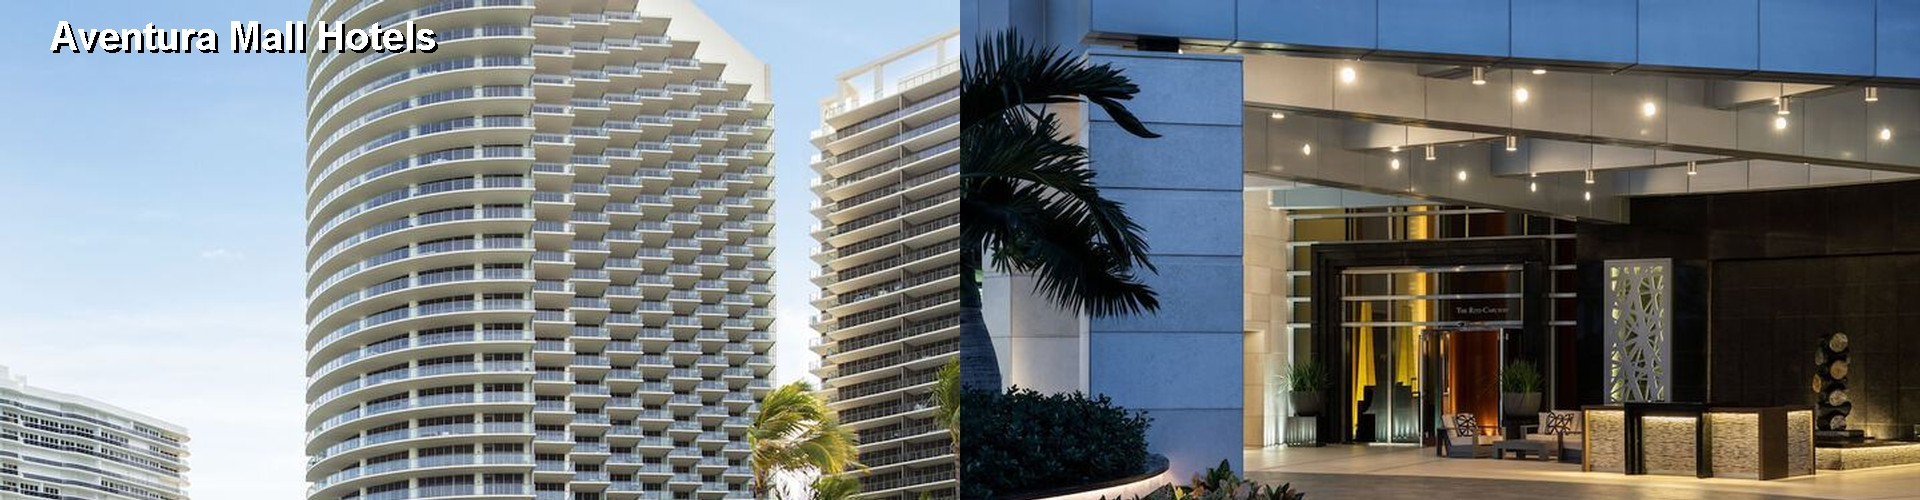 5 Best Hotels Near Aventura Mall